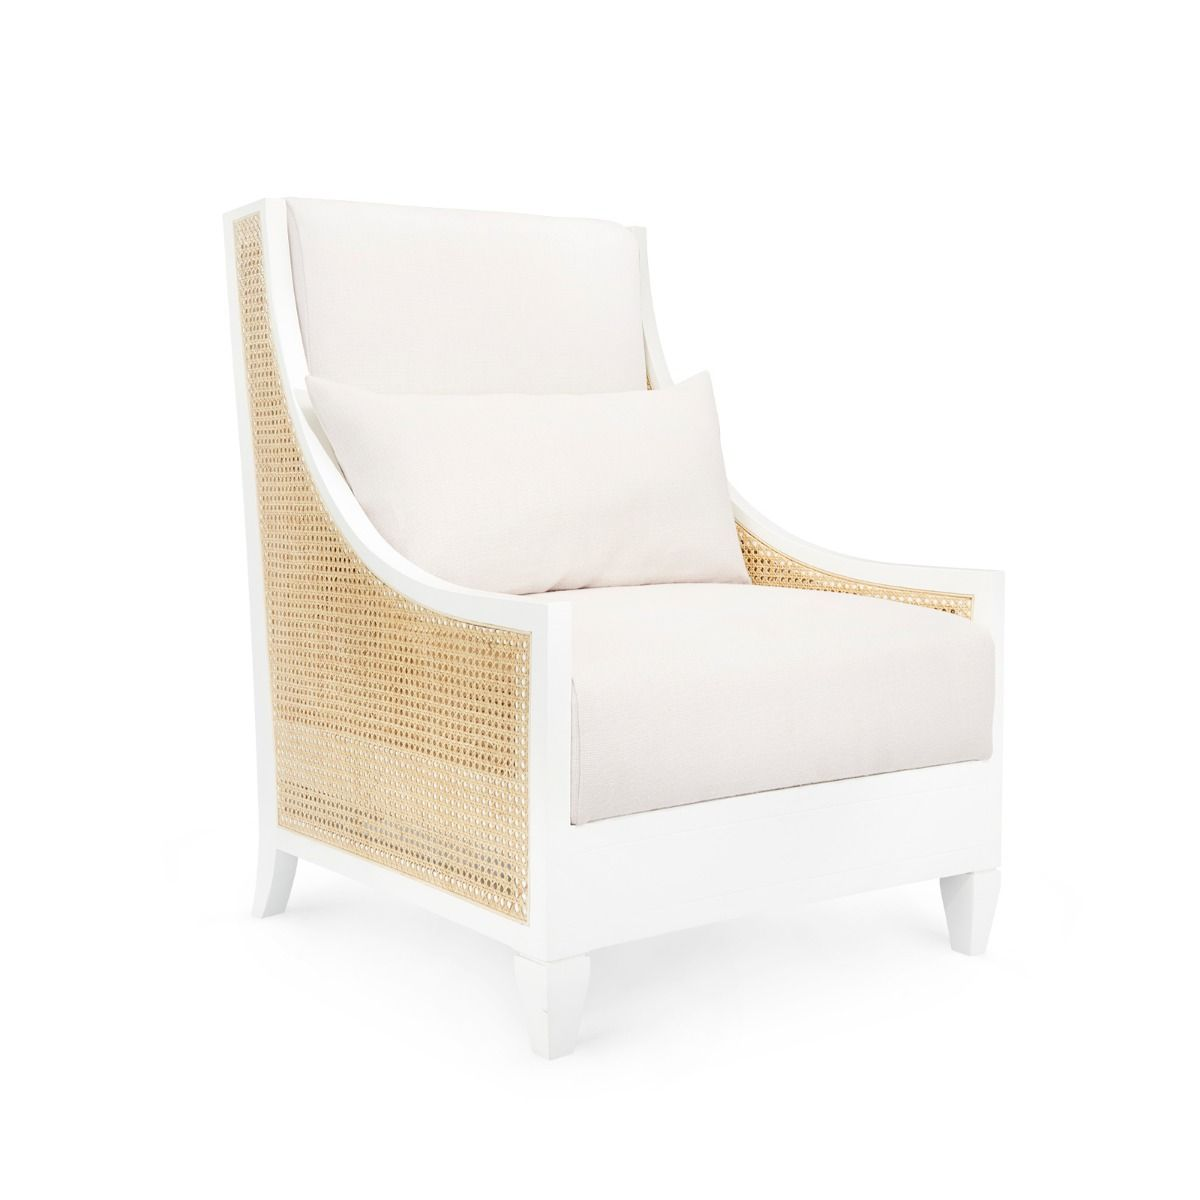 Bungalow 5 - Raleigh Club Chair - White